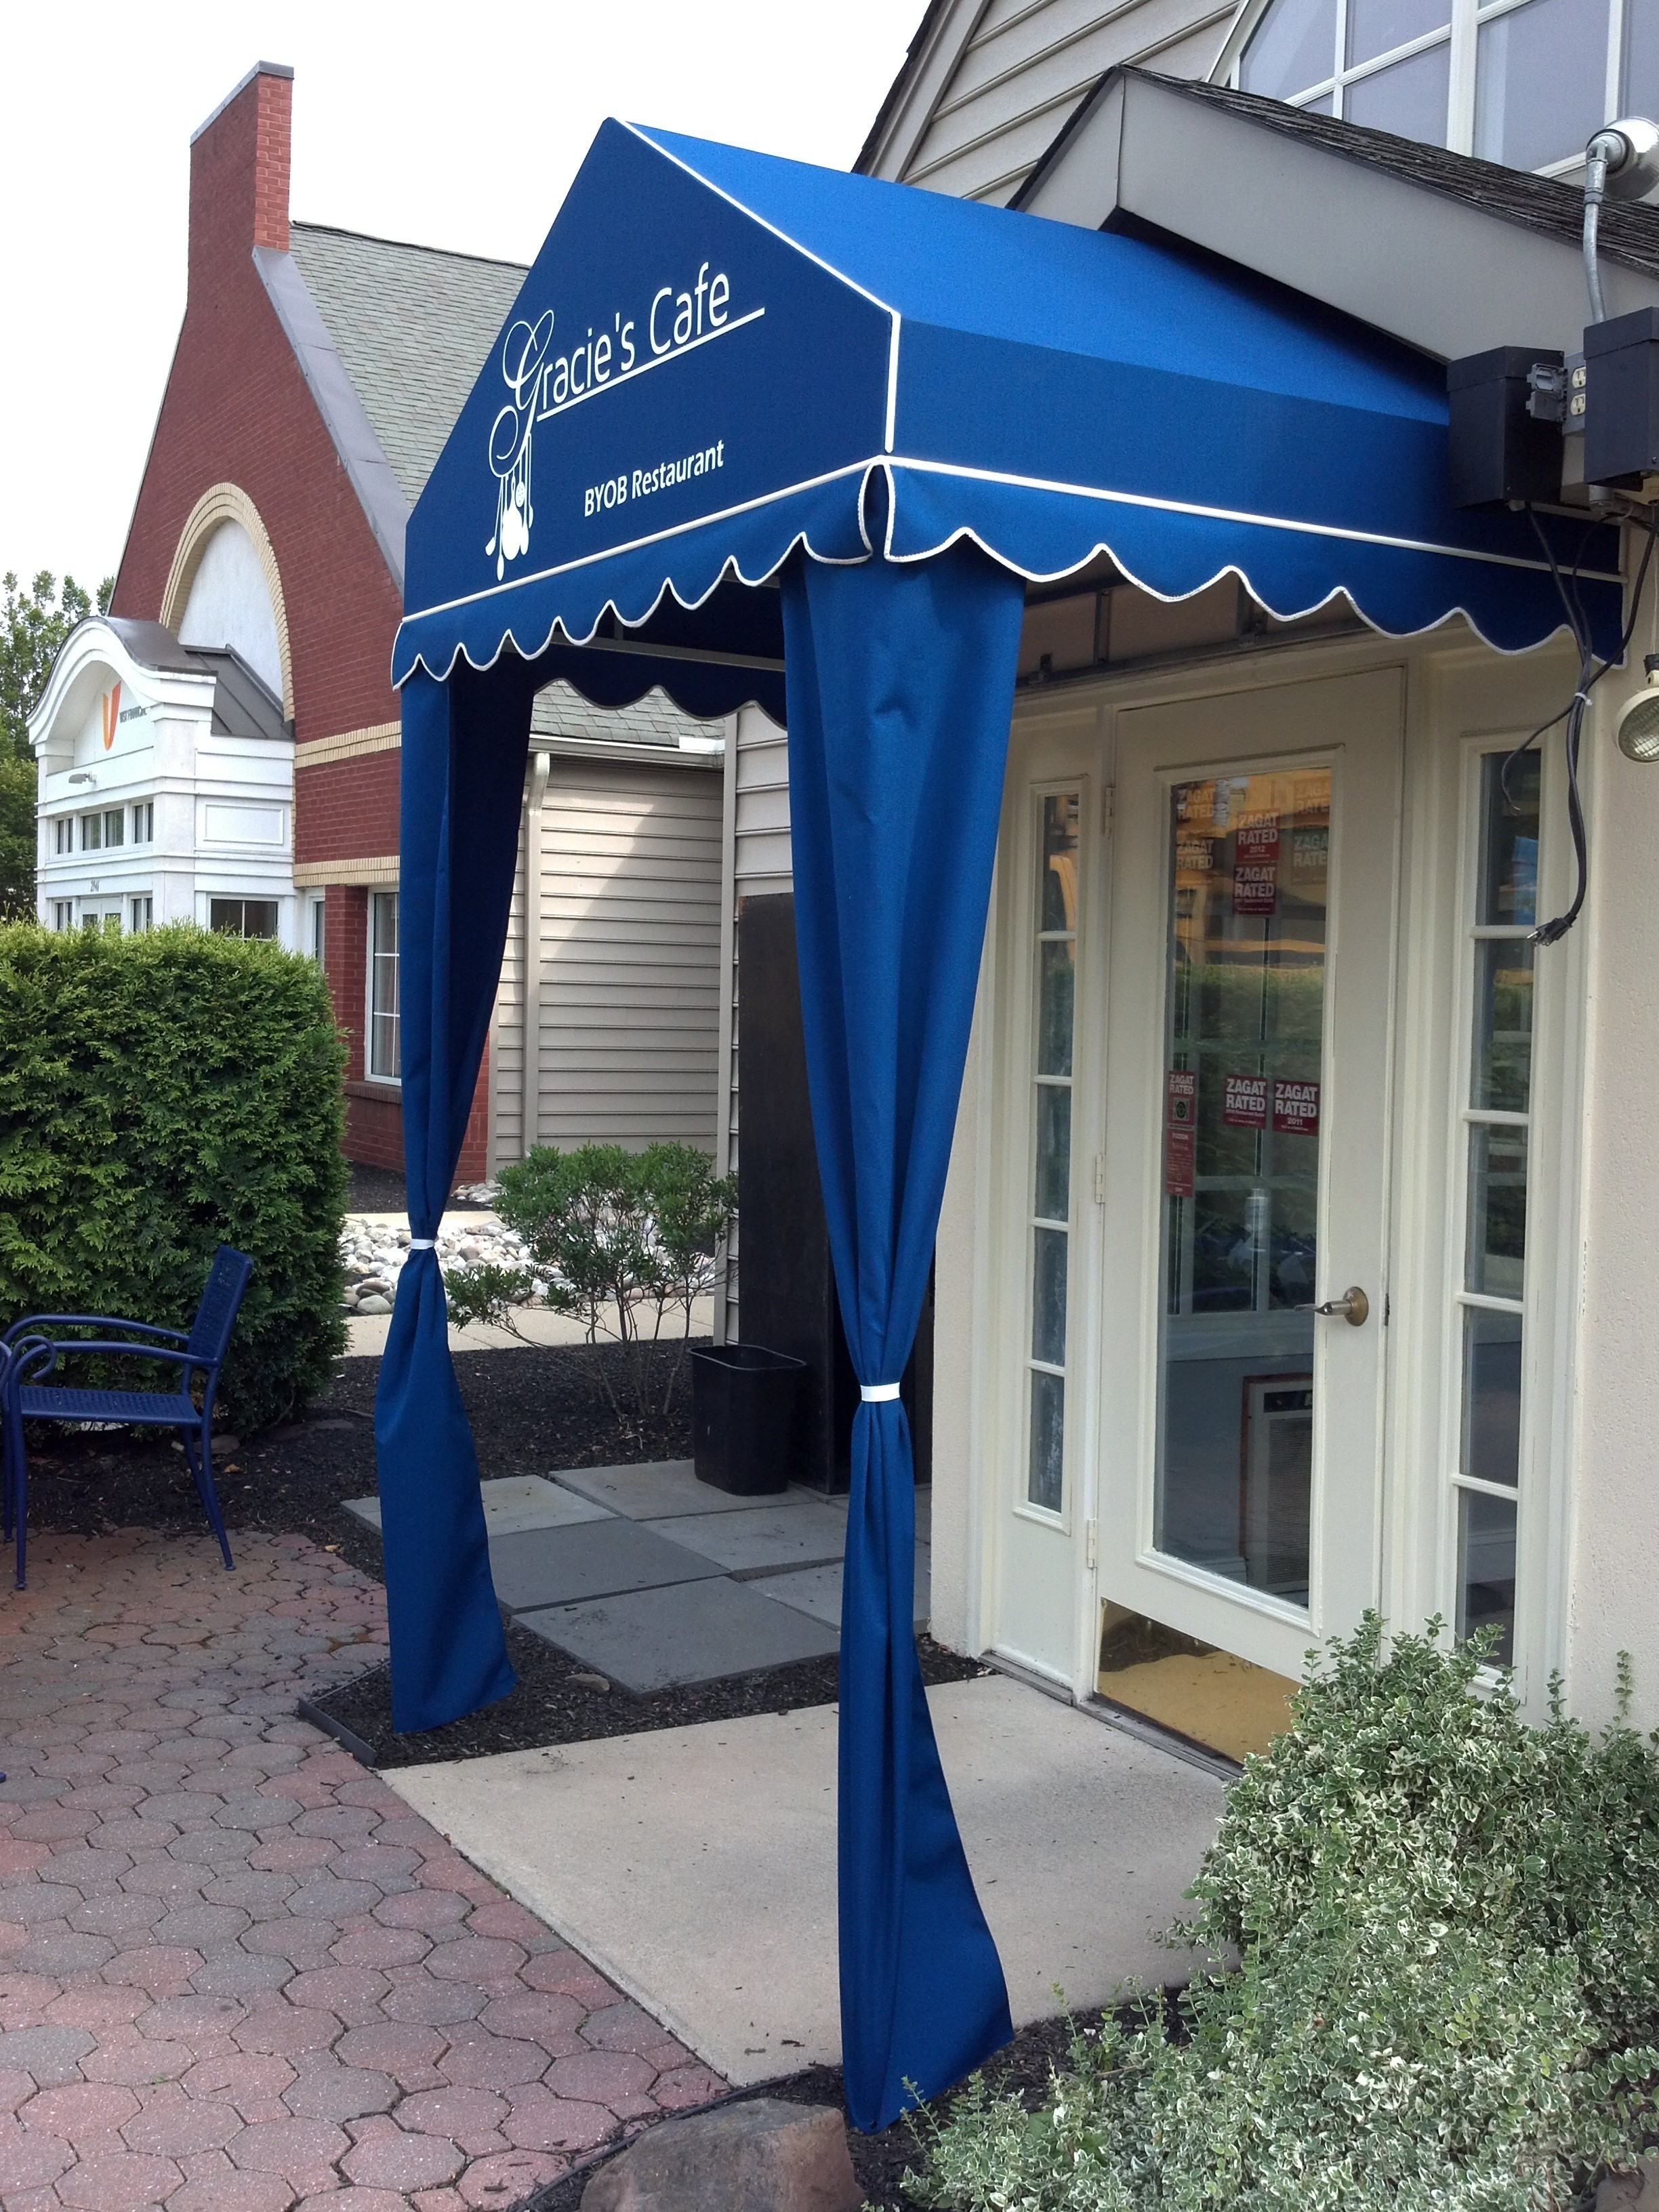 Gracies cafe with custom awning